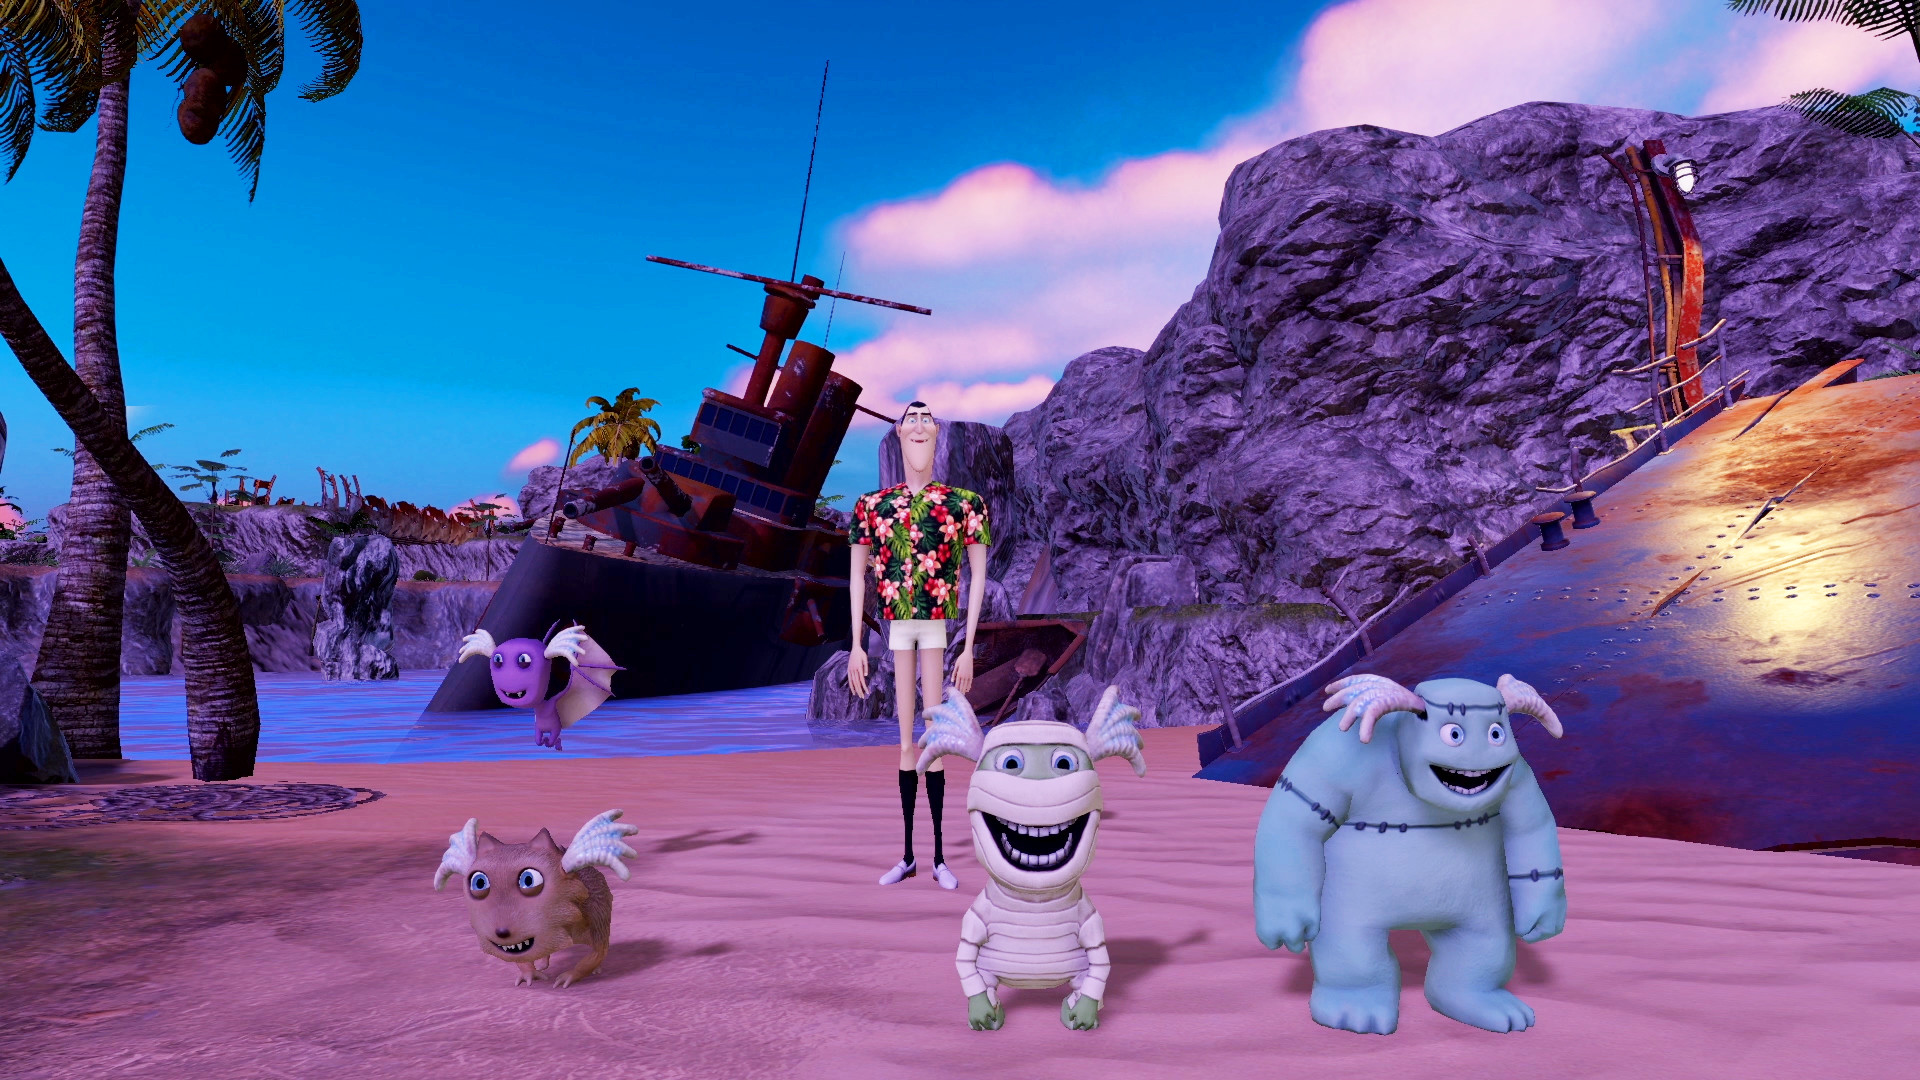 Hotel Transylvania 3 Monsters Overboard Steam